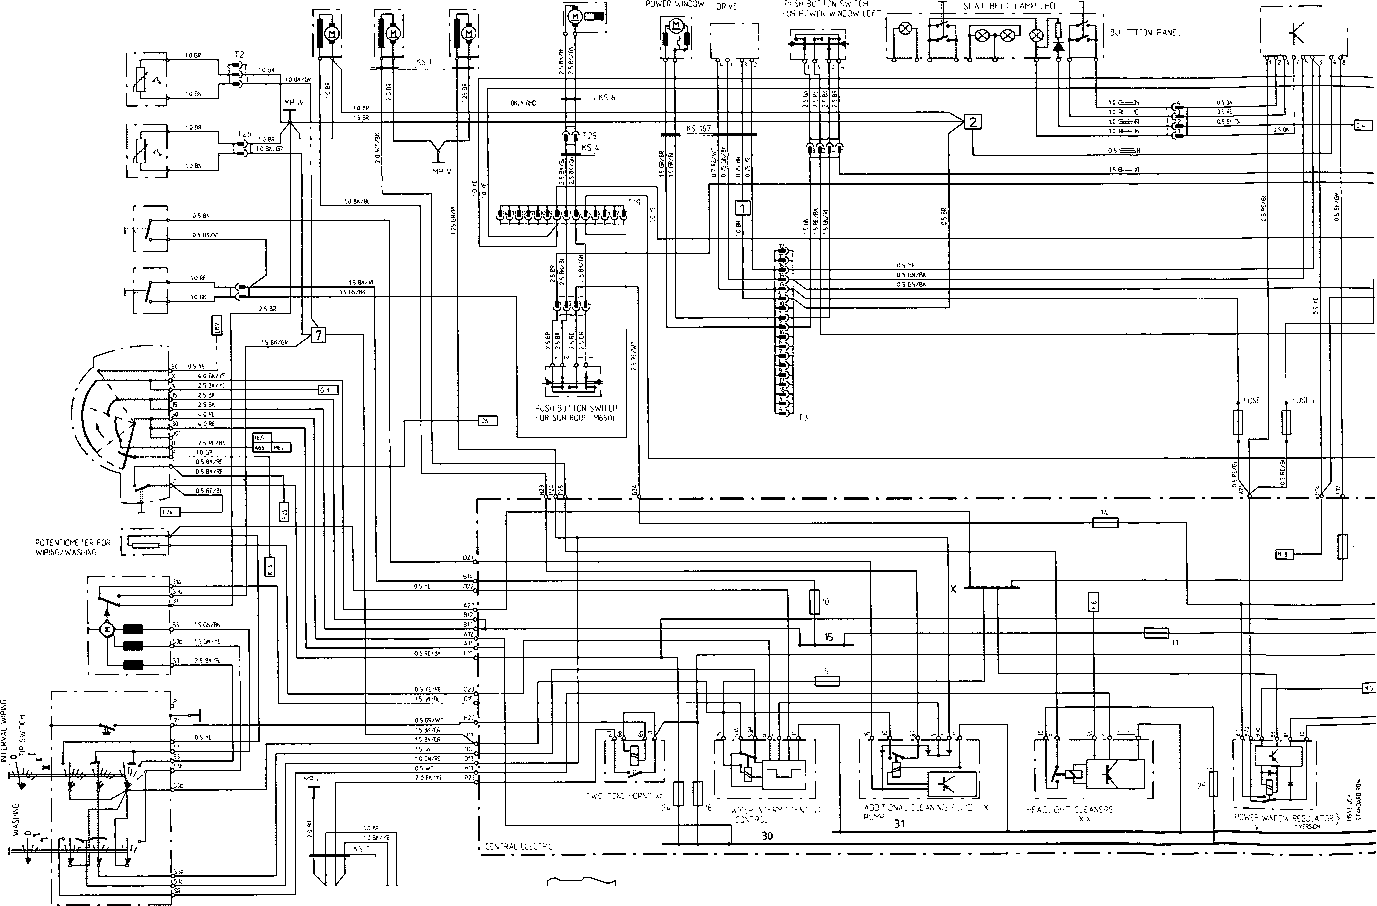 1969 porsche 911 wiring diagram